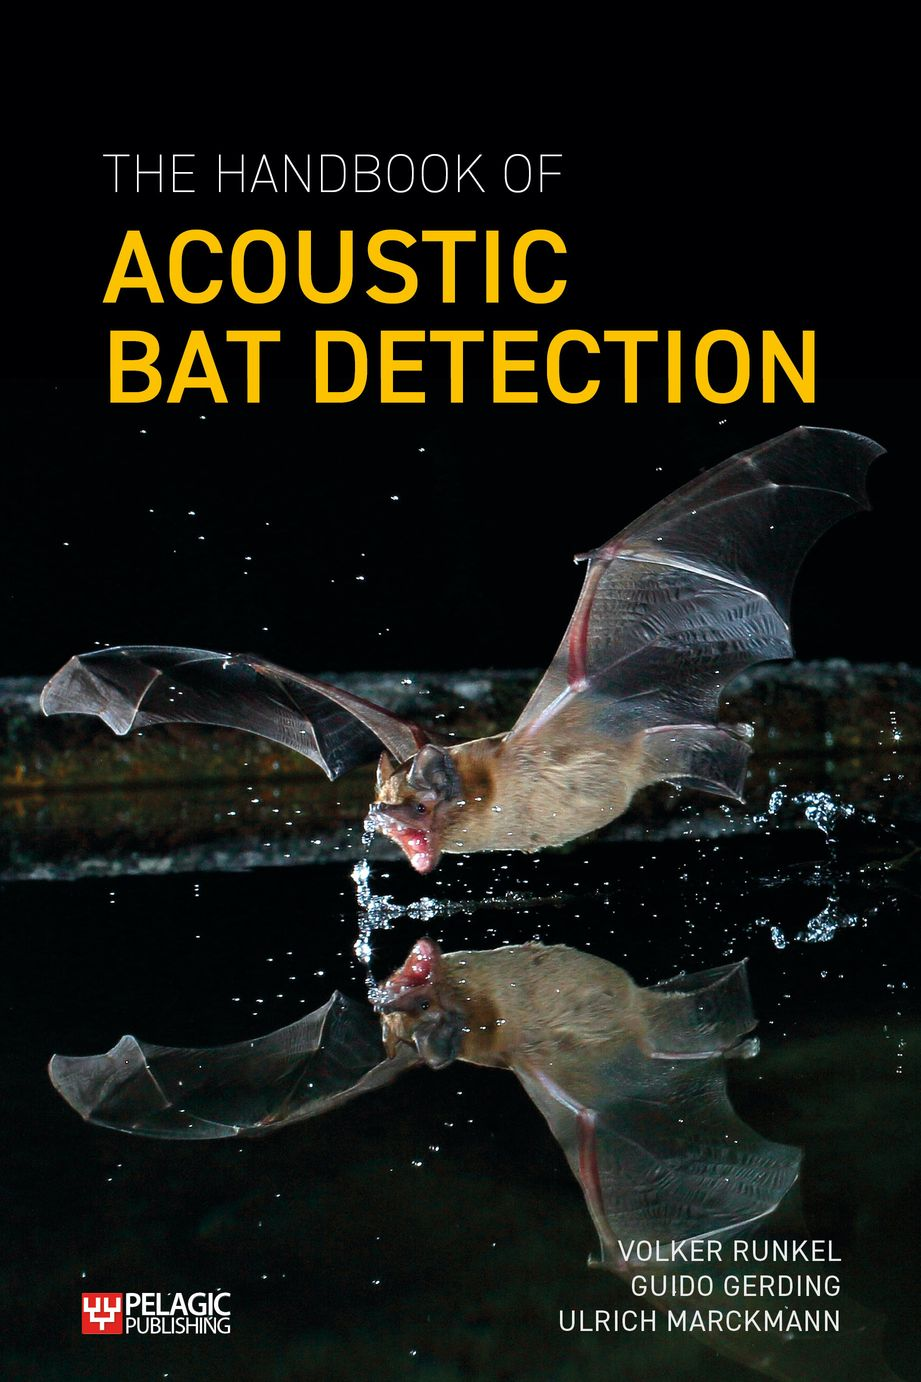 The Handbook of Acoustic Bat Detection